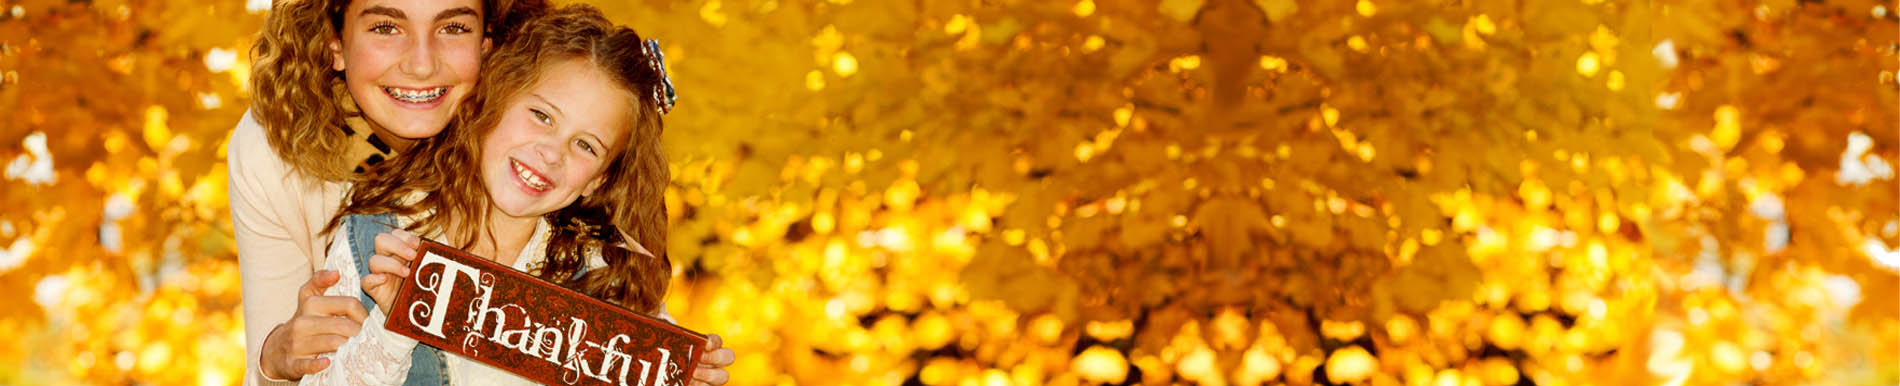 https://www.healthychildren.org/SiteCollectionImage-Homepage-Banners/thankful_sign_girls_fall.jpg